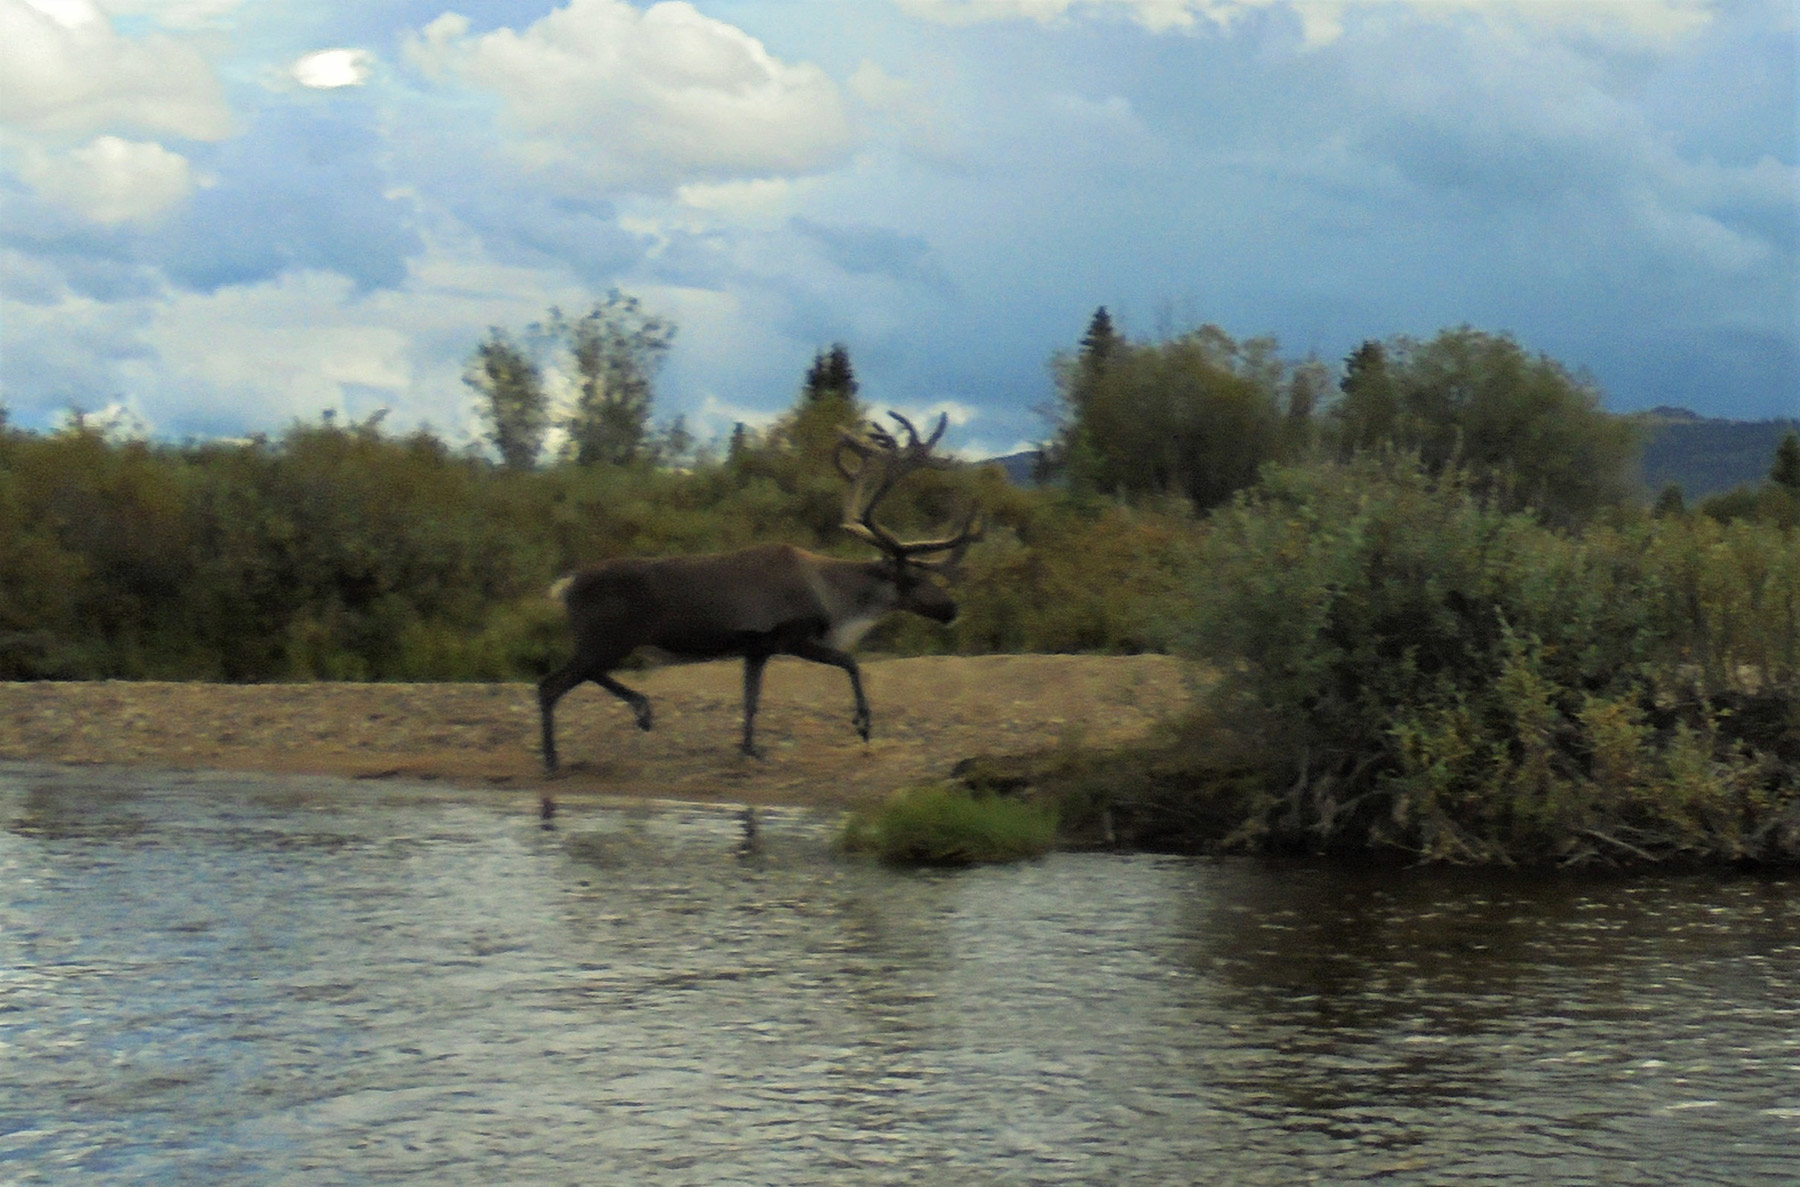 Charley River caribou